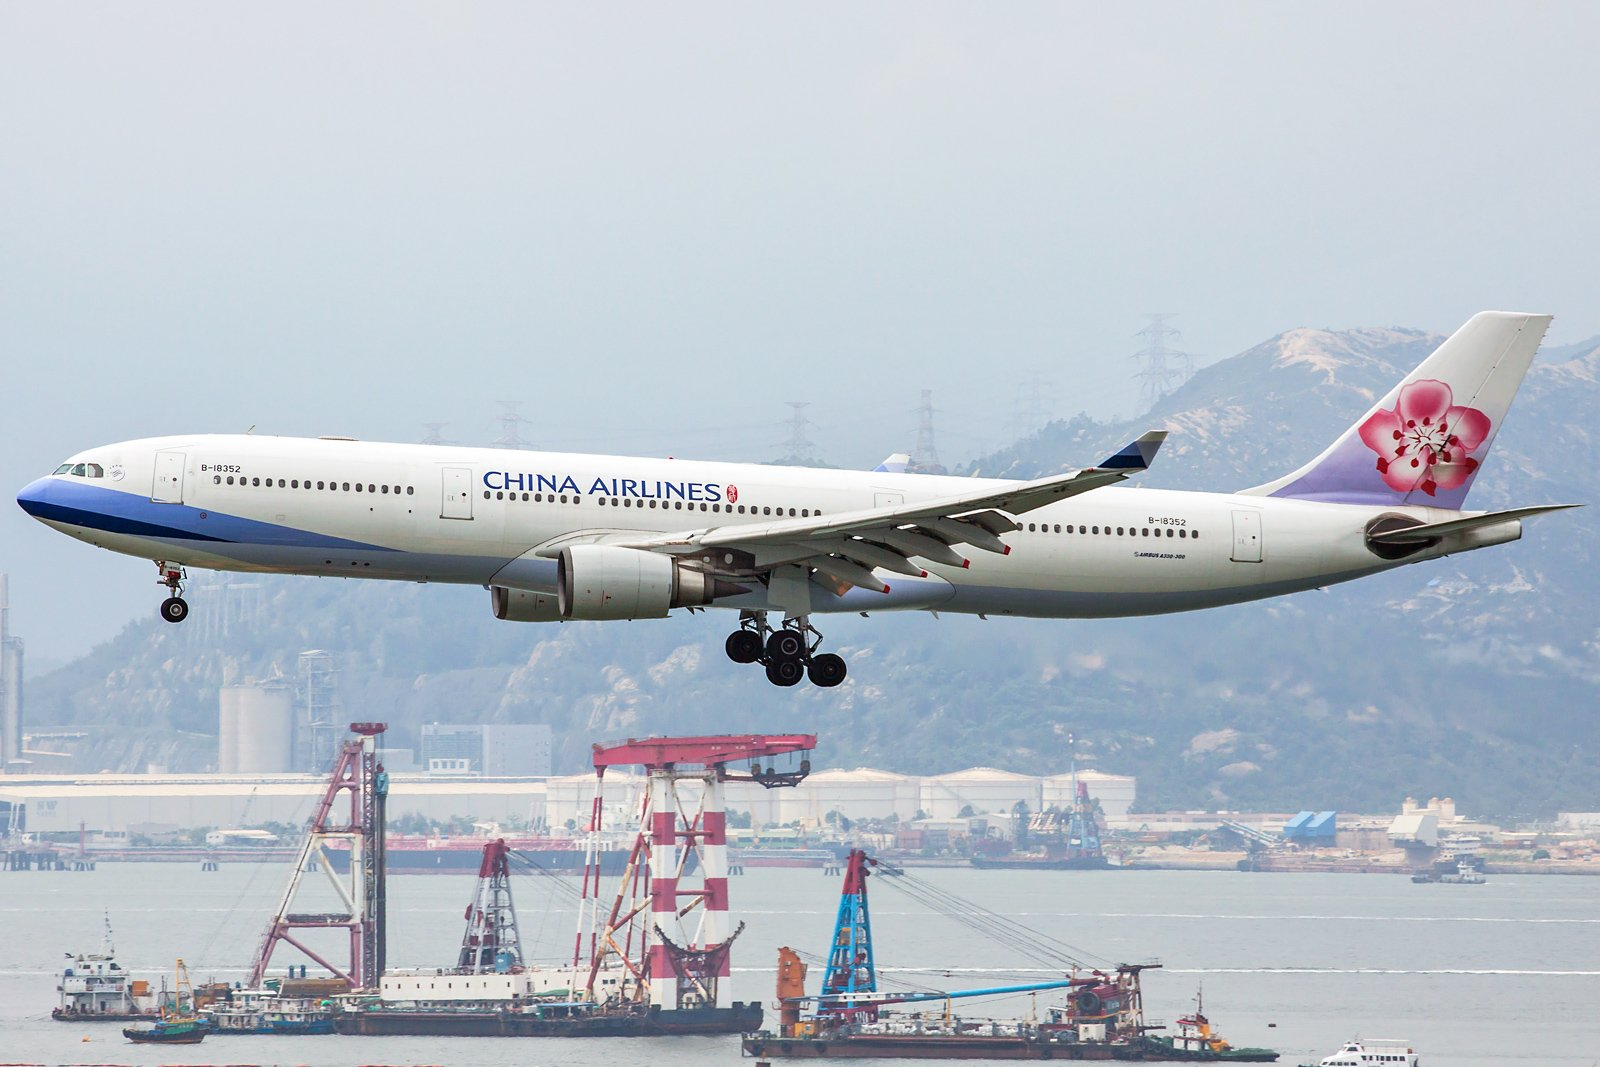 China Airlines Airbus A330-302 B-18352